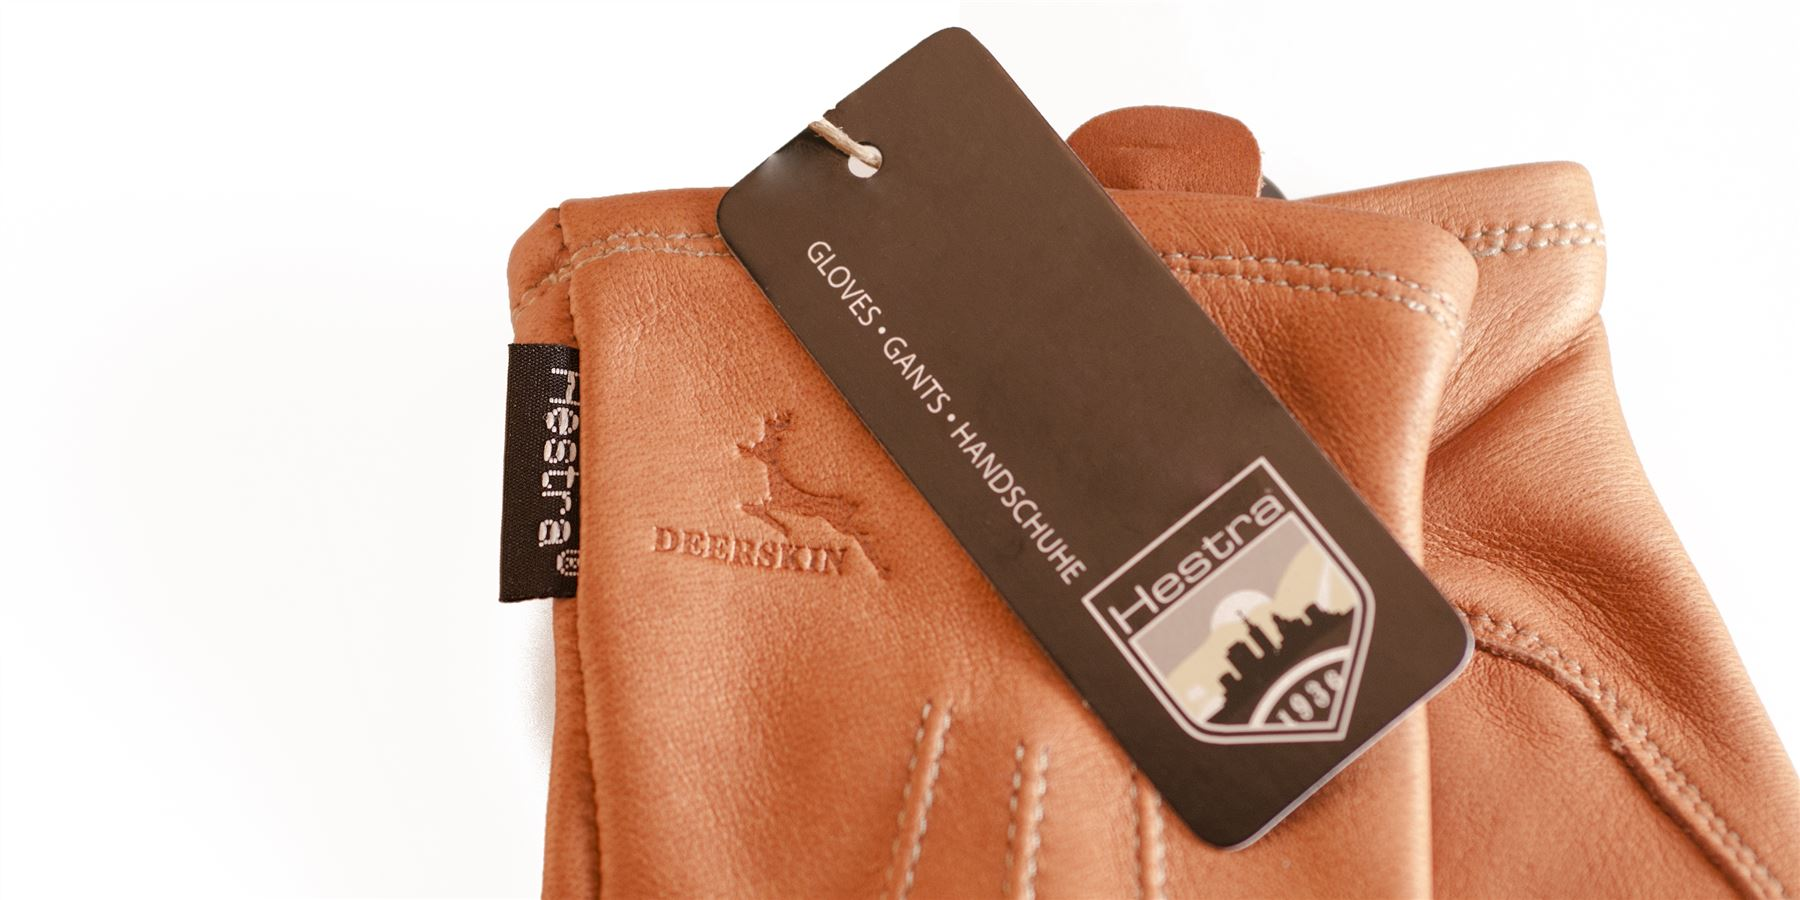 Ladies leather gloves with silk lining - Hestra Premium Ladies Deerskin Leather Gloves Silk Lined